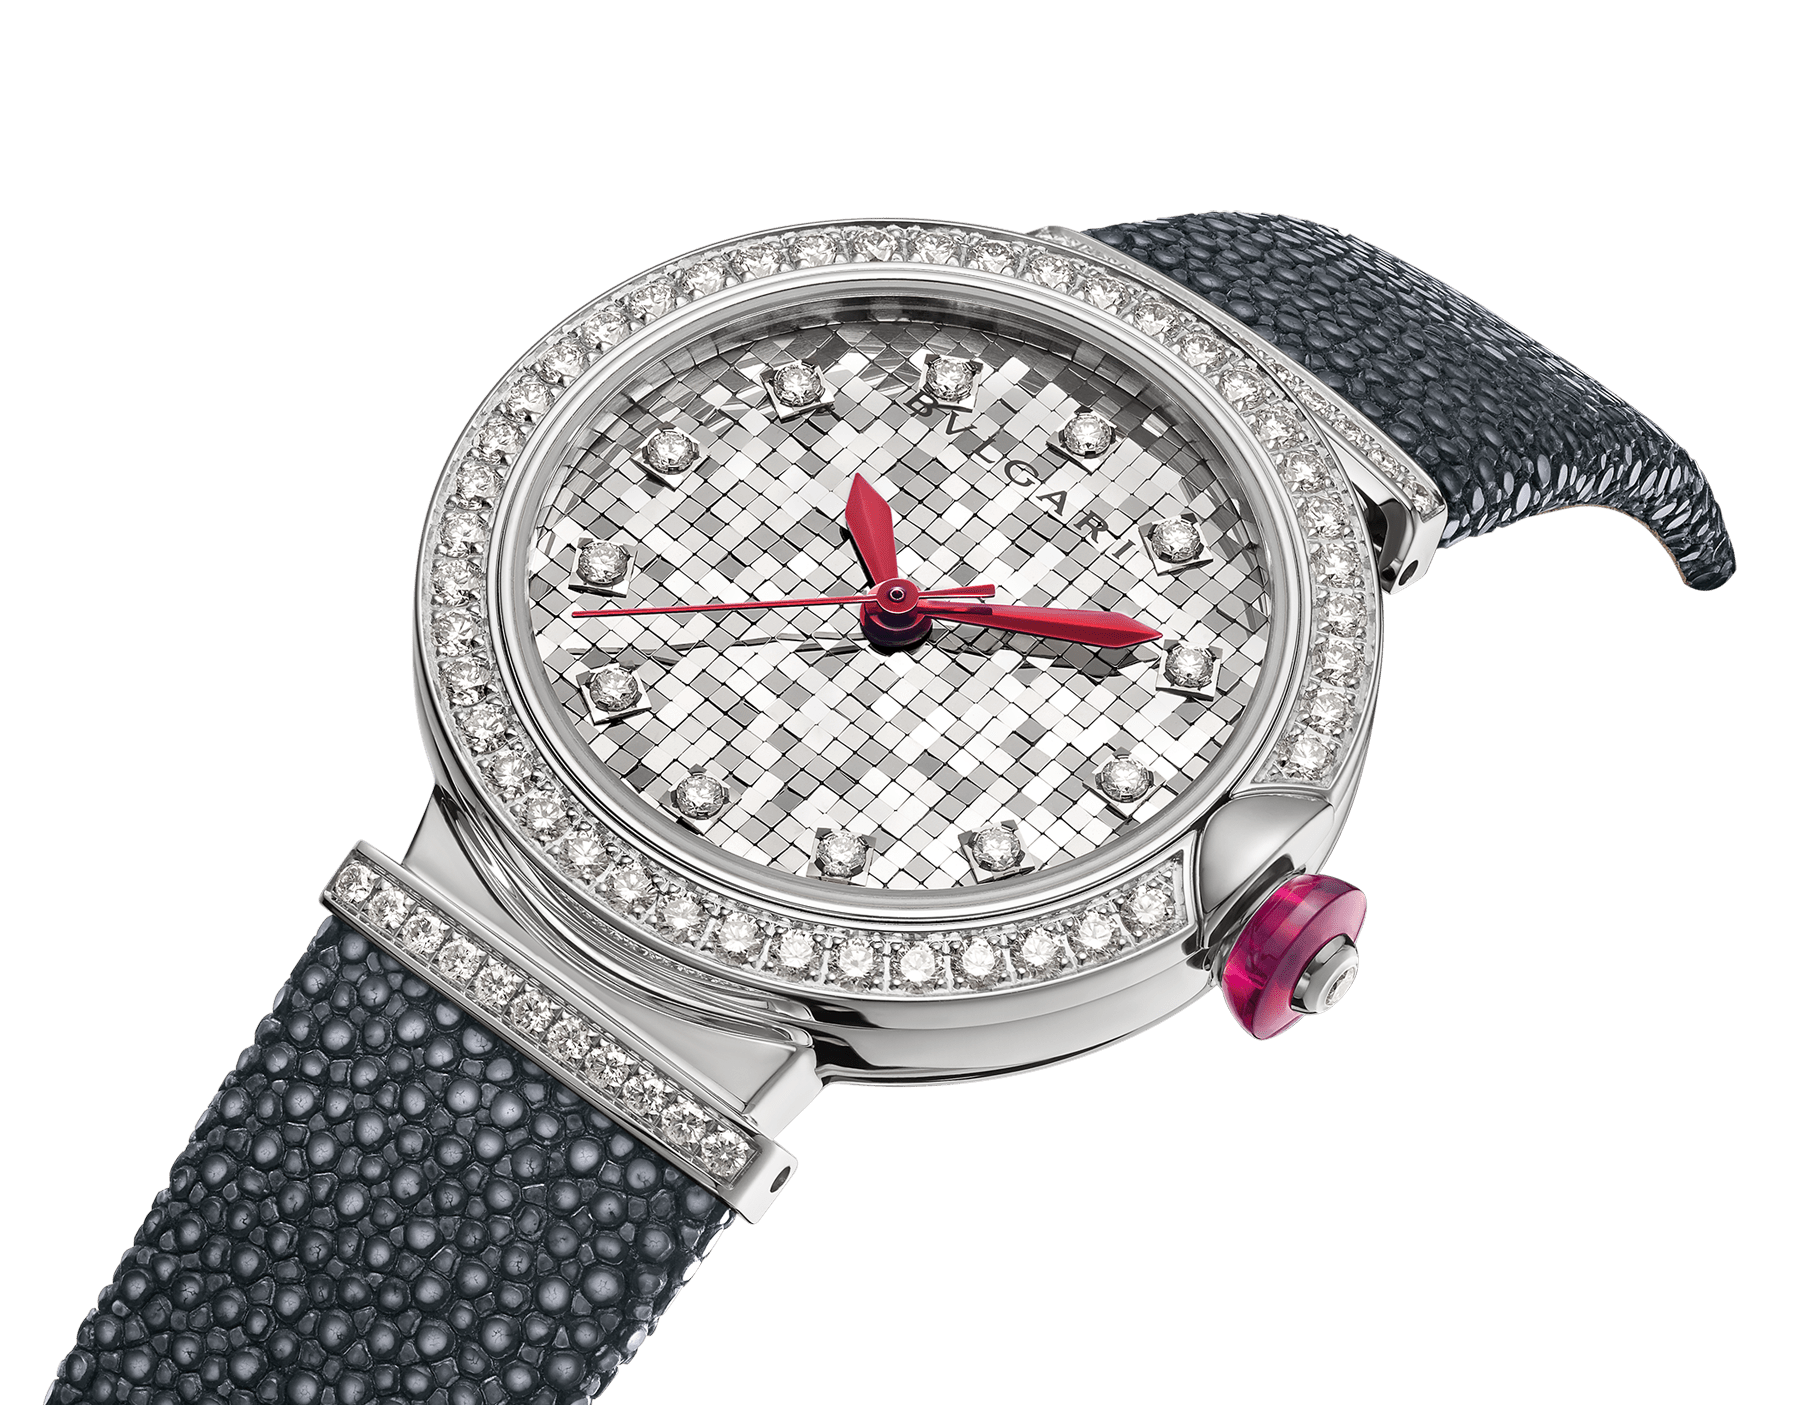 LVCEA watch with 18 kt white gold case set with diamonds, 18 kt white gold mosaic dial and black galuchat bracelet. 102830 image 2